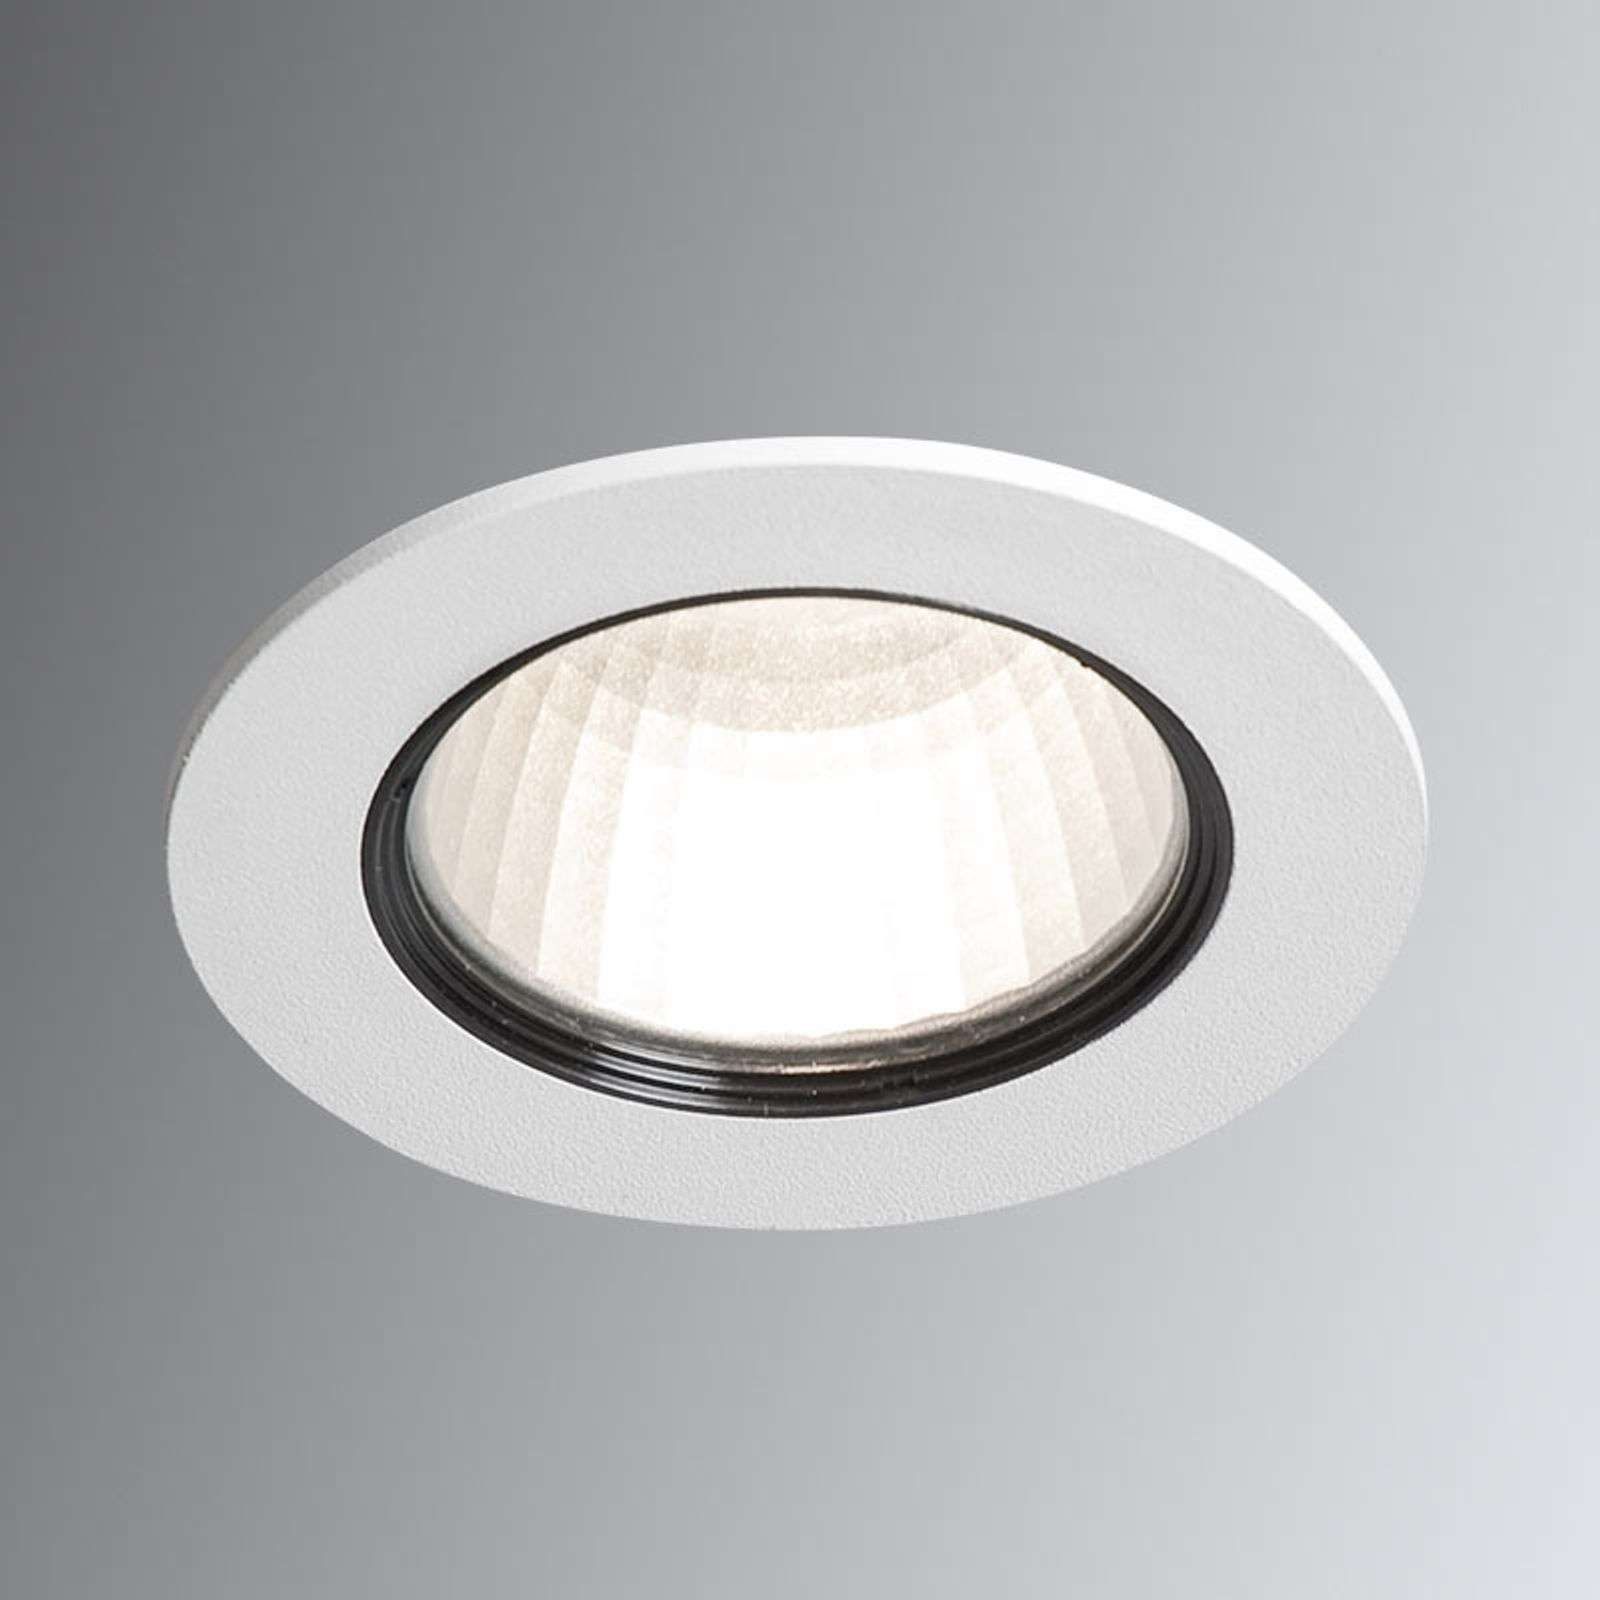 Spot encastrable LED Sunray I 9 W, 3 000 K